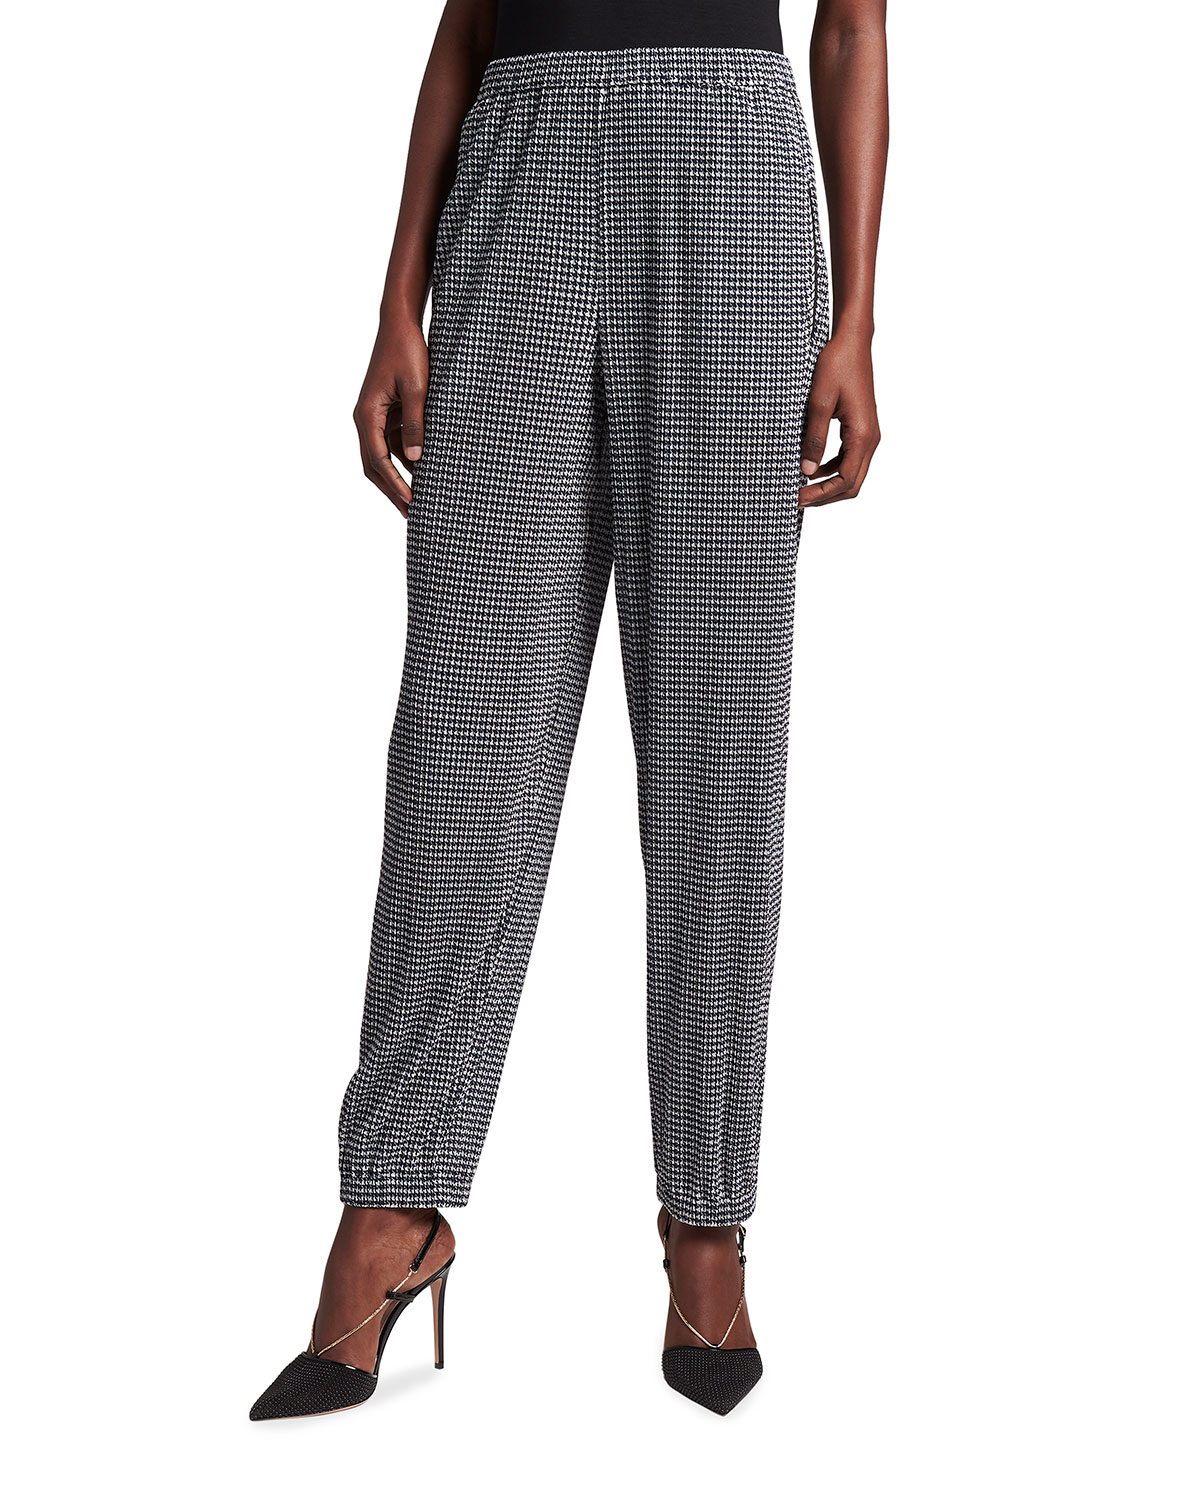 Giorgio Armani HOUNDSTOOTH PRINTED JERSEY TROUSERS